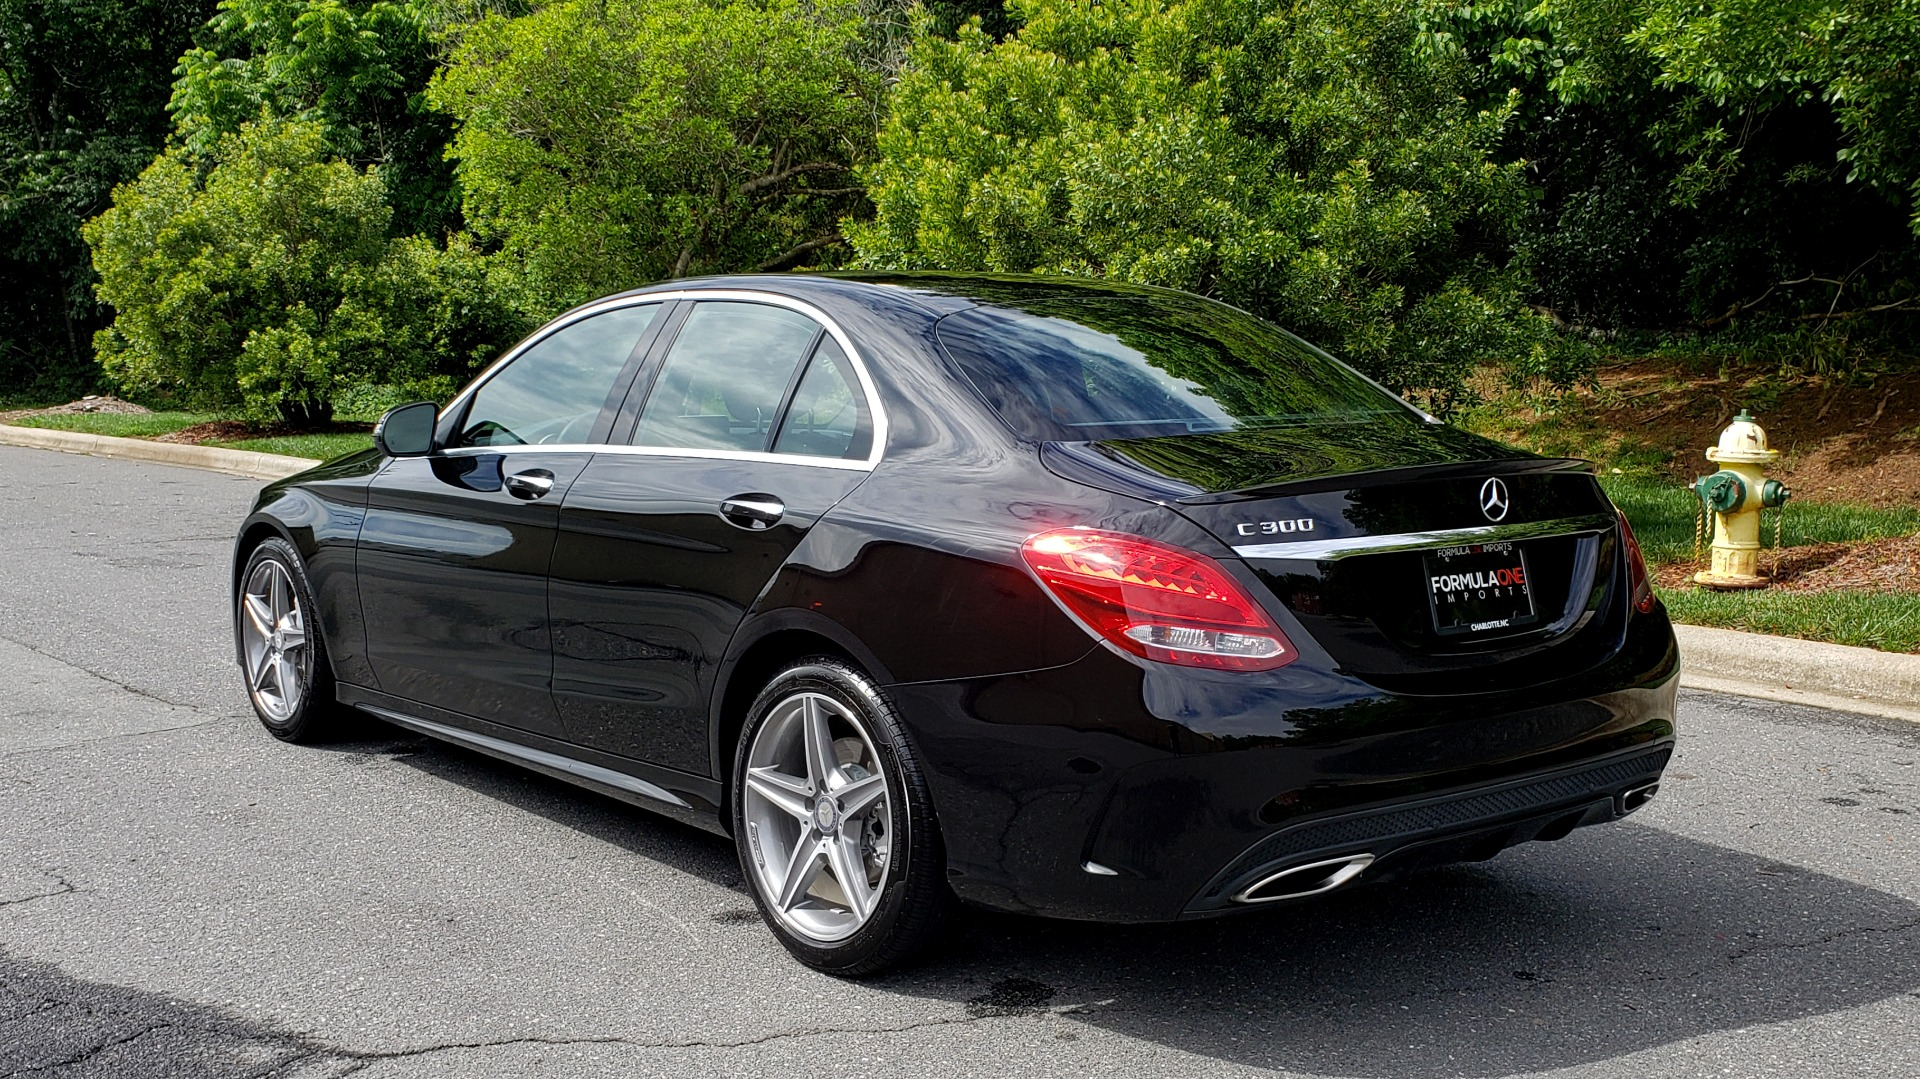 Used 2016 Mercedes-Benz C-CLASS C300 SPORT / PREM PKG / NAV / PANO-ROOF / REARVIEW / KEYLESS-GO for sale Sold at Formula Imports in Charlotte NC 28227 3